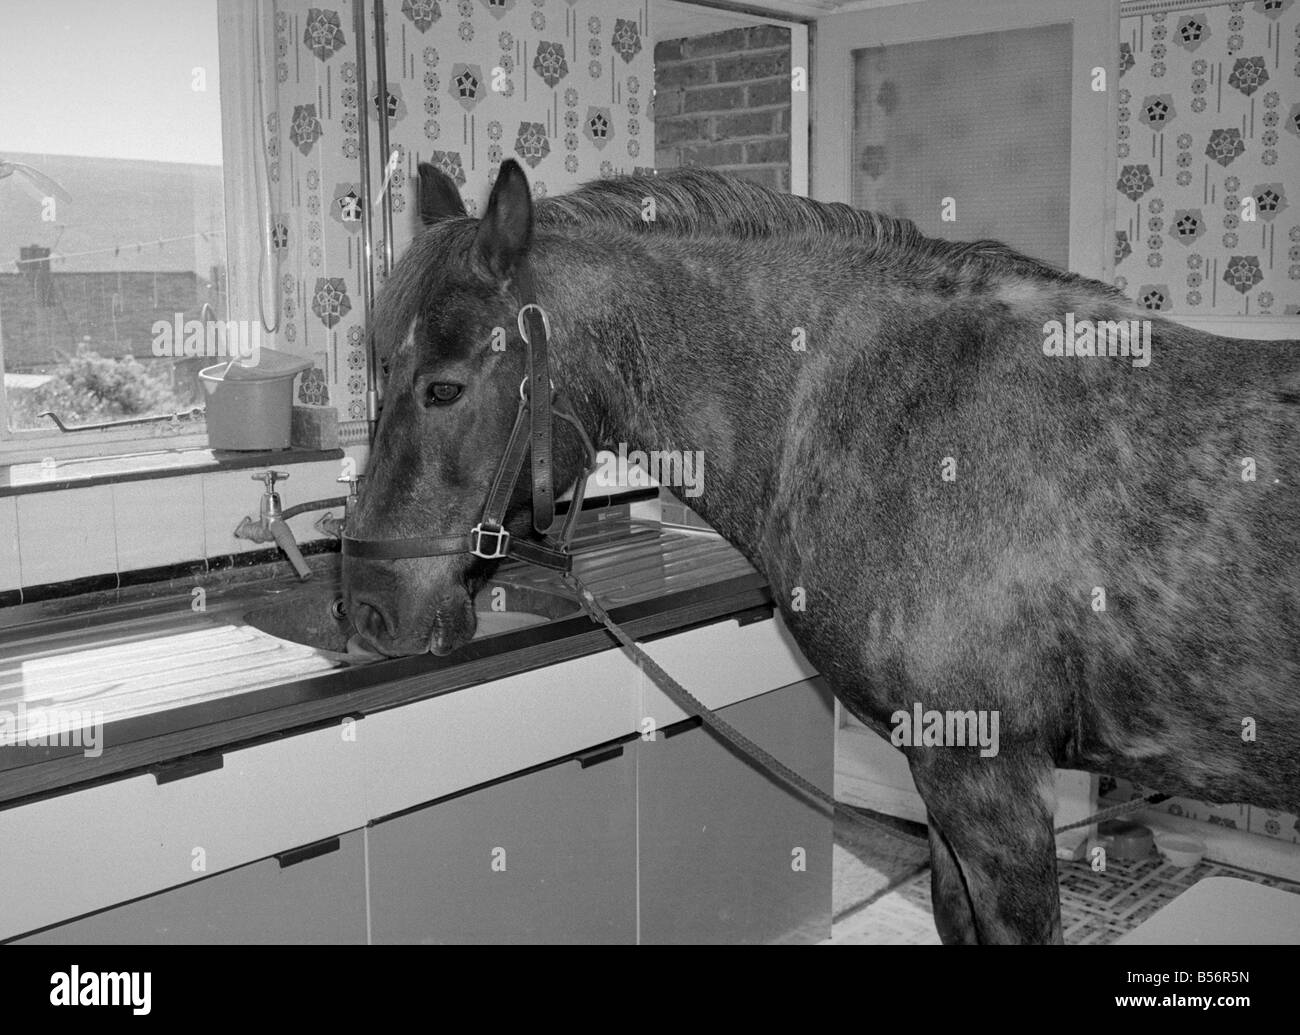 Sam the pet pony having a drink of water in the kitchen sink of his ...